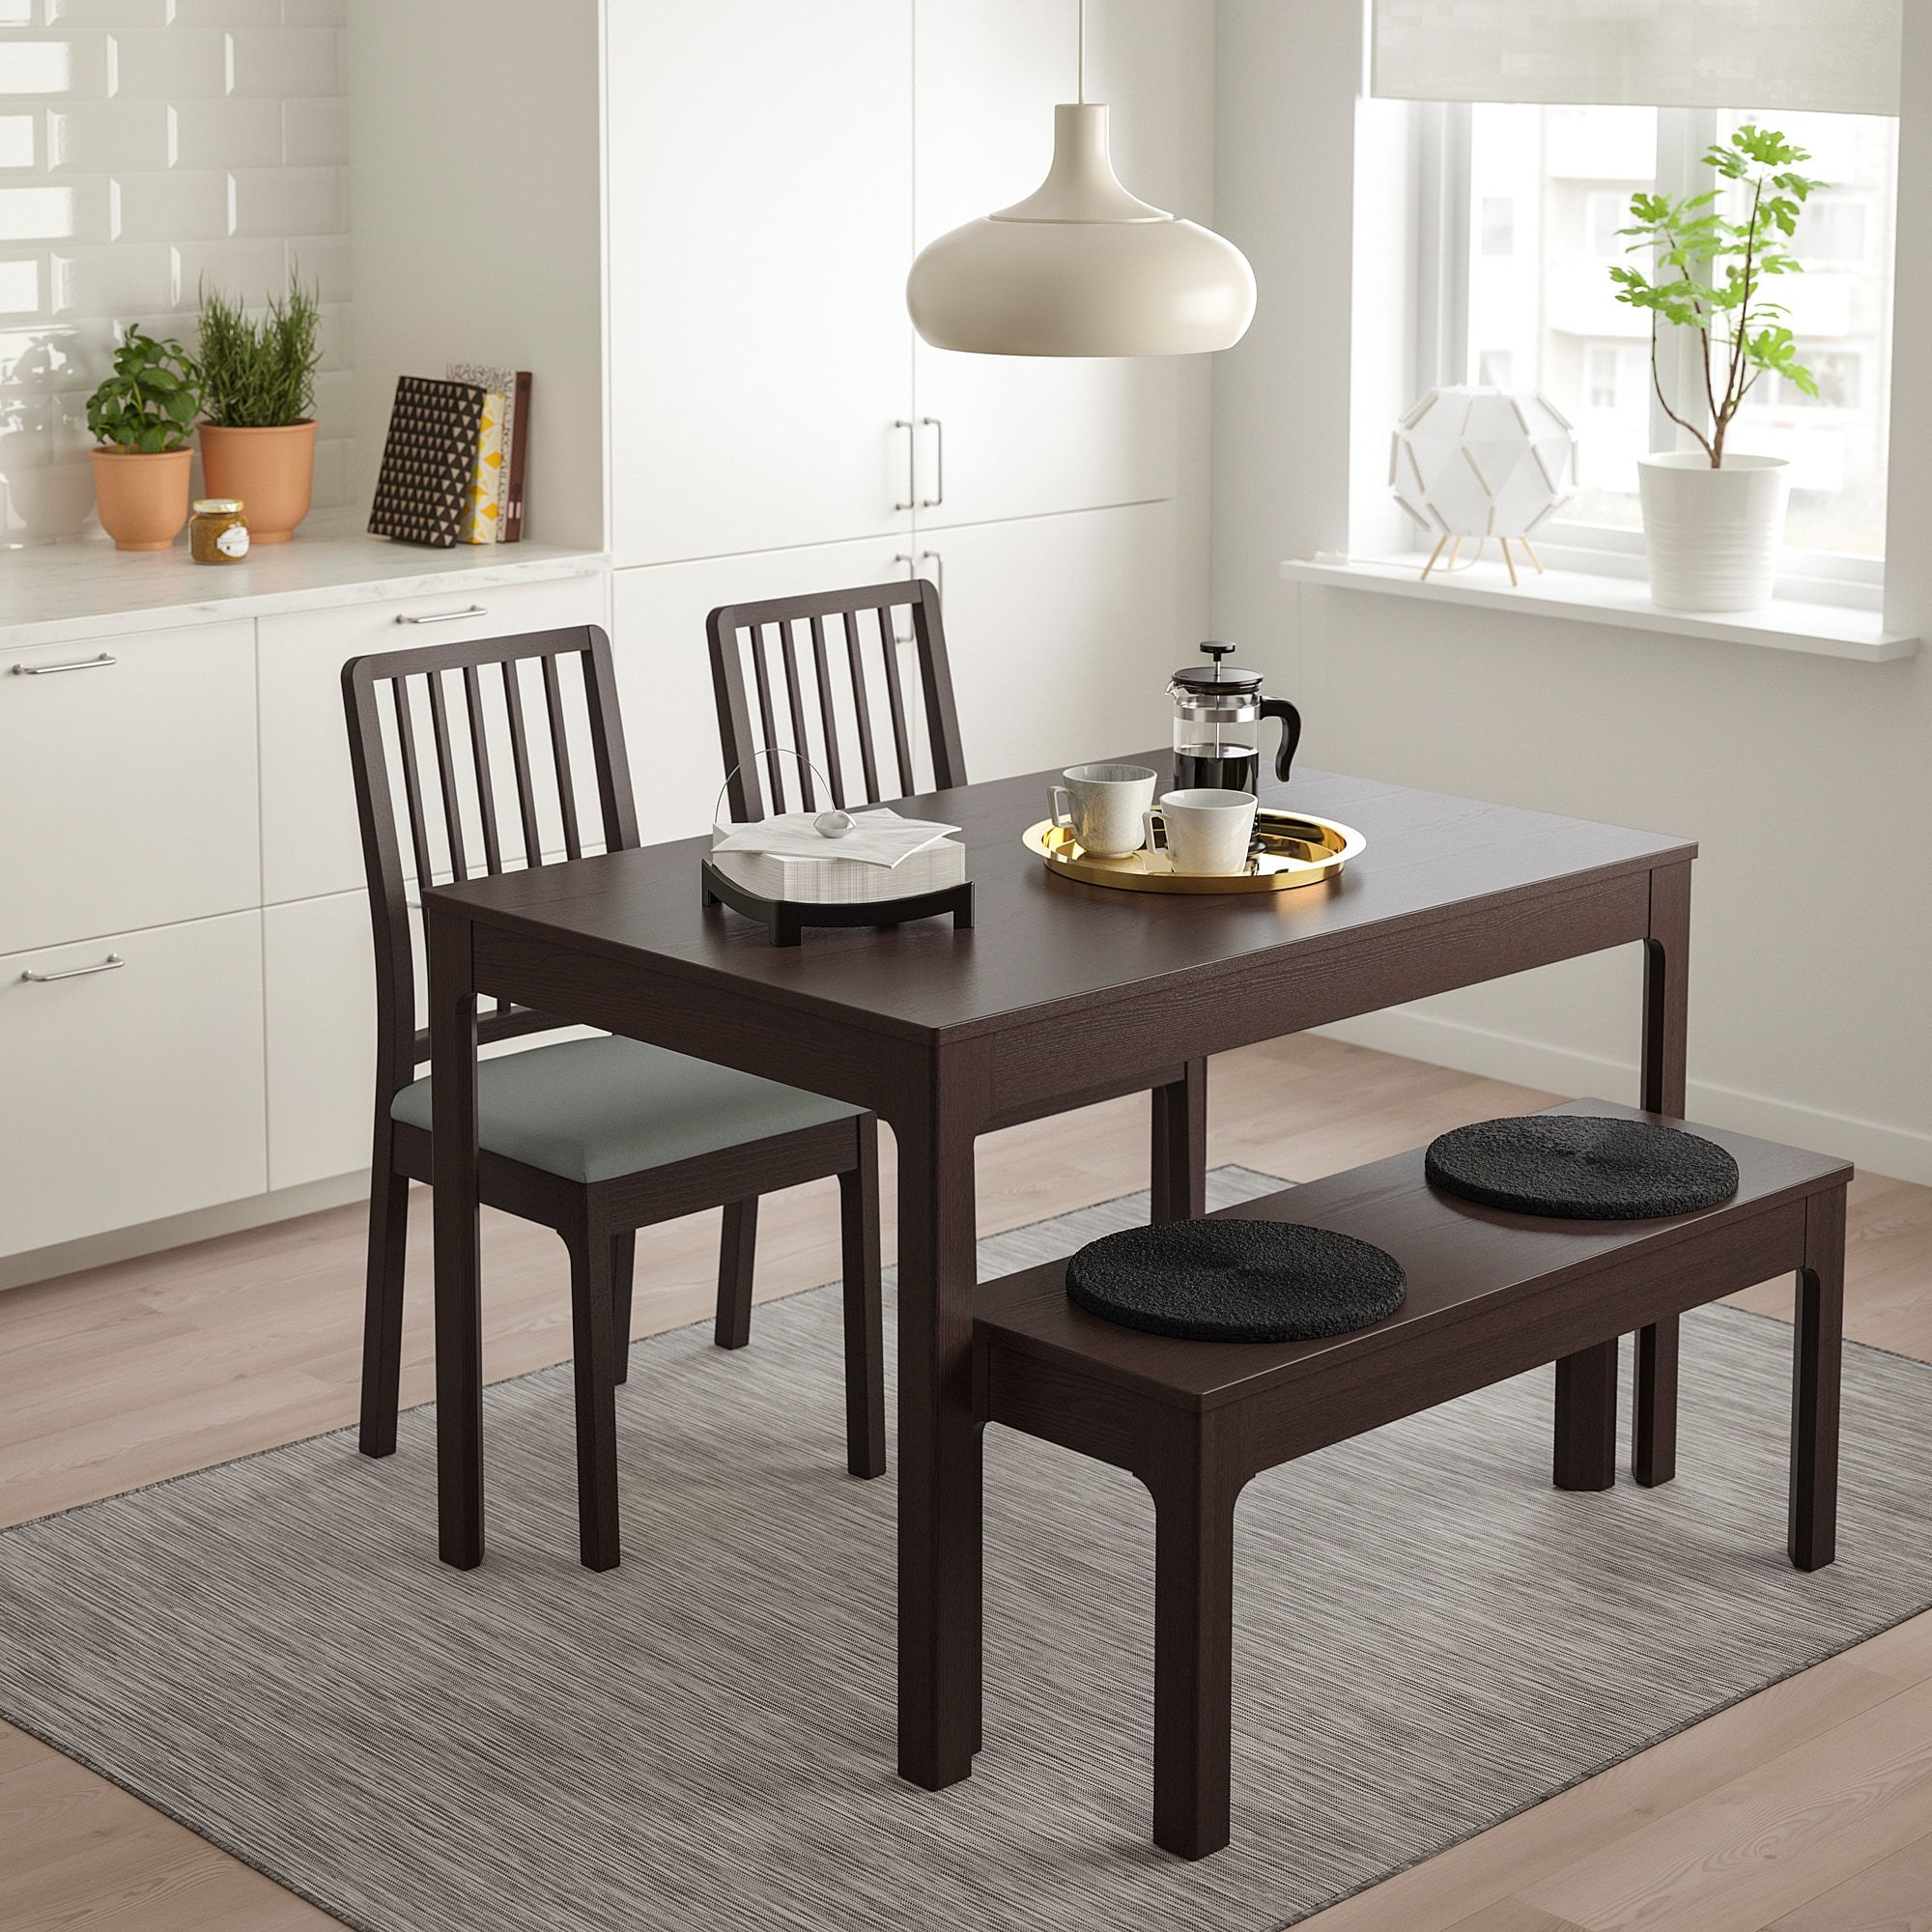 Trendy Ekedalen Table Set With Bench In Rustic Pine Small Dining Tables (Gallery 16 of 30)